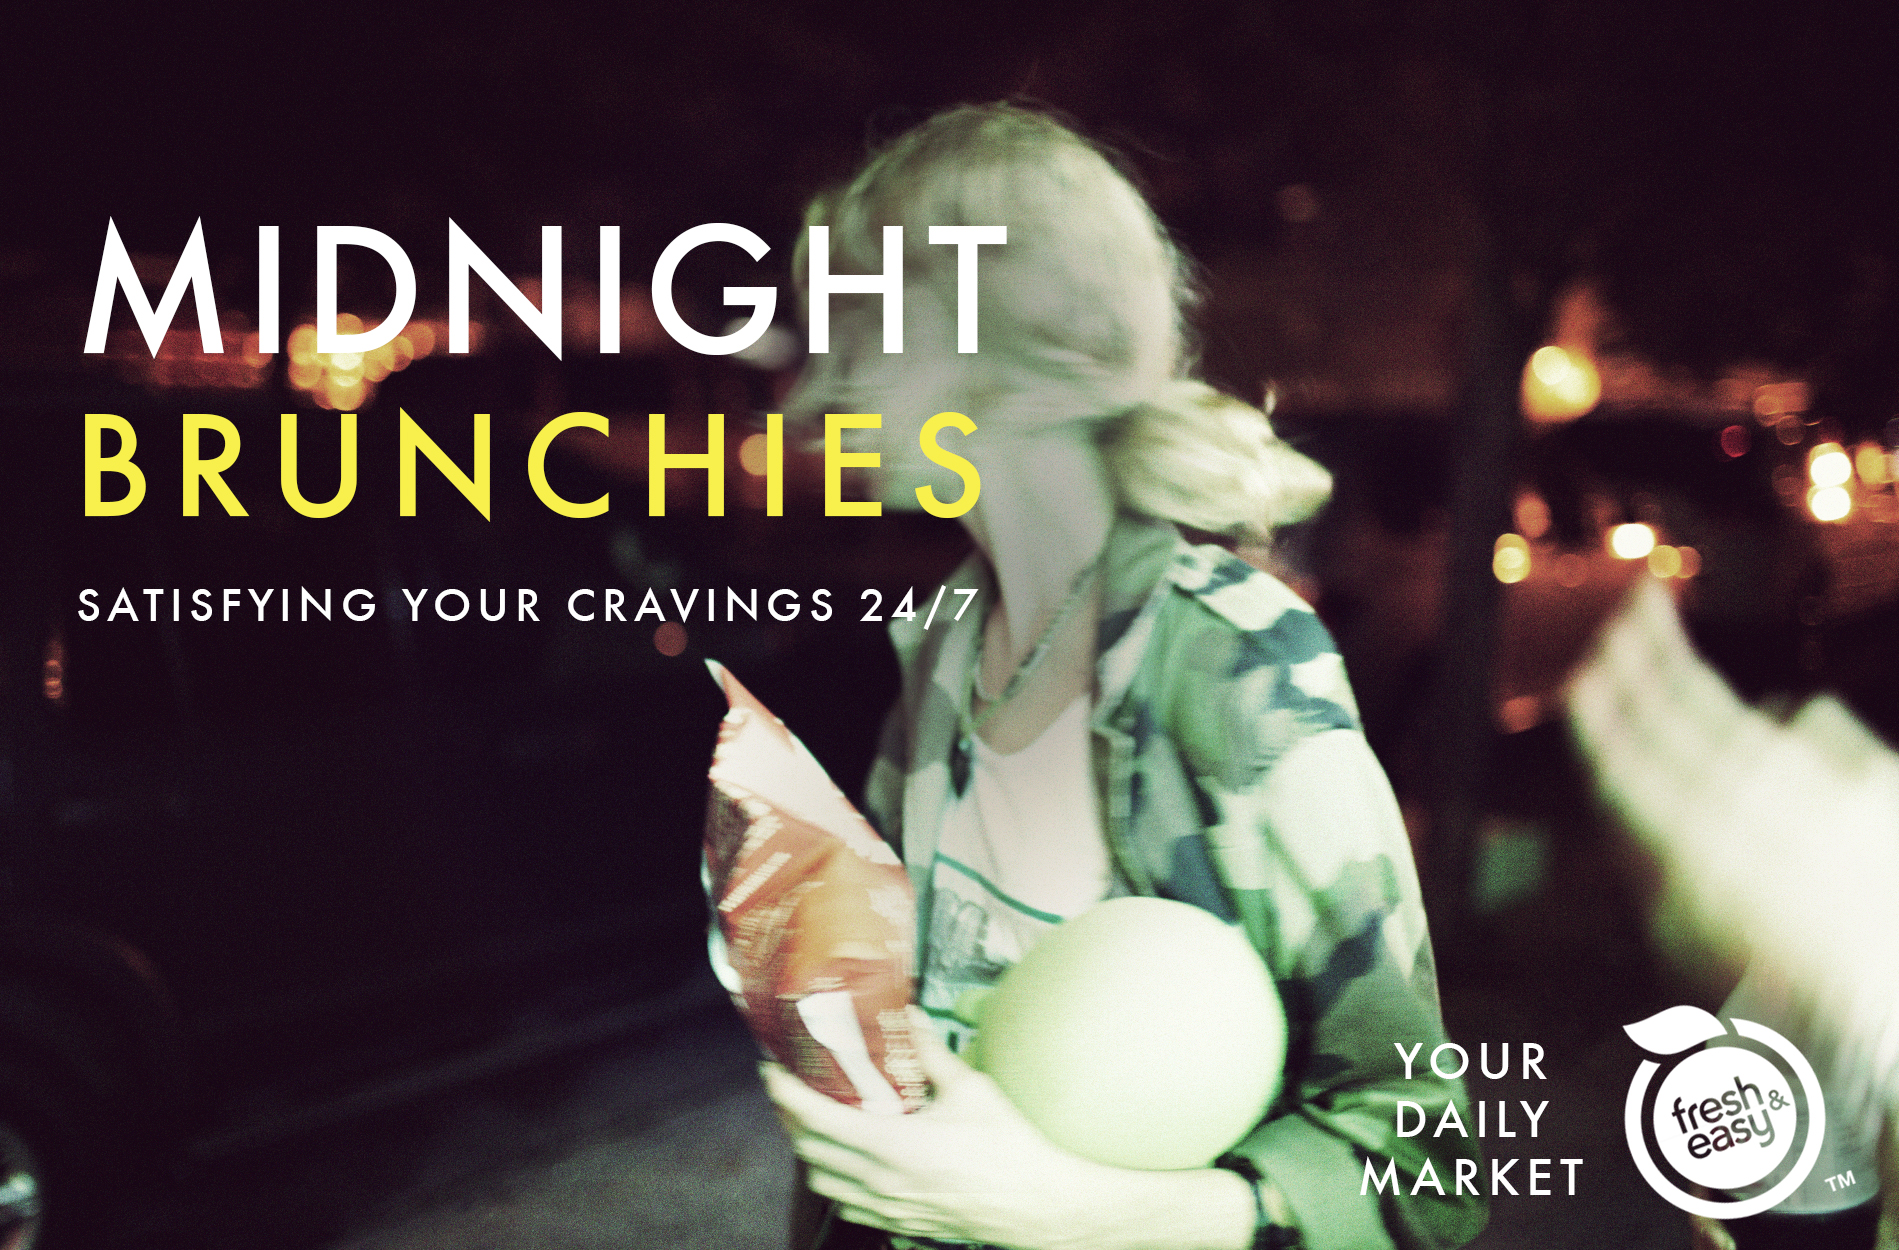 Midnight Brunchies_Daily Market.jpg